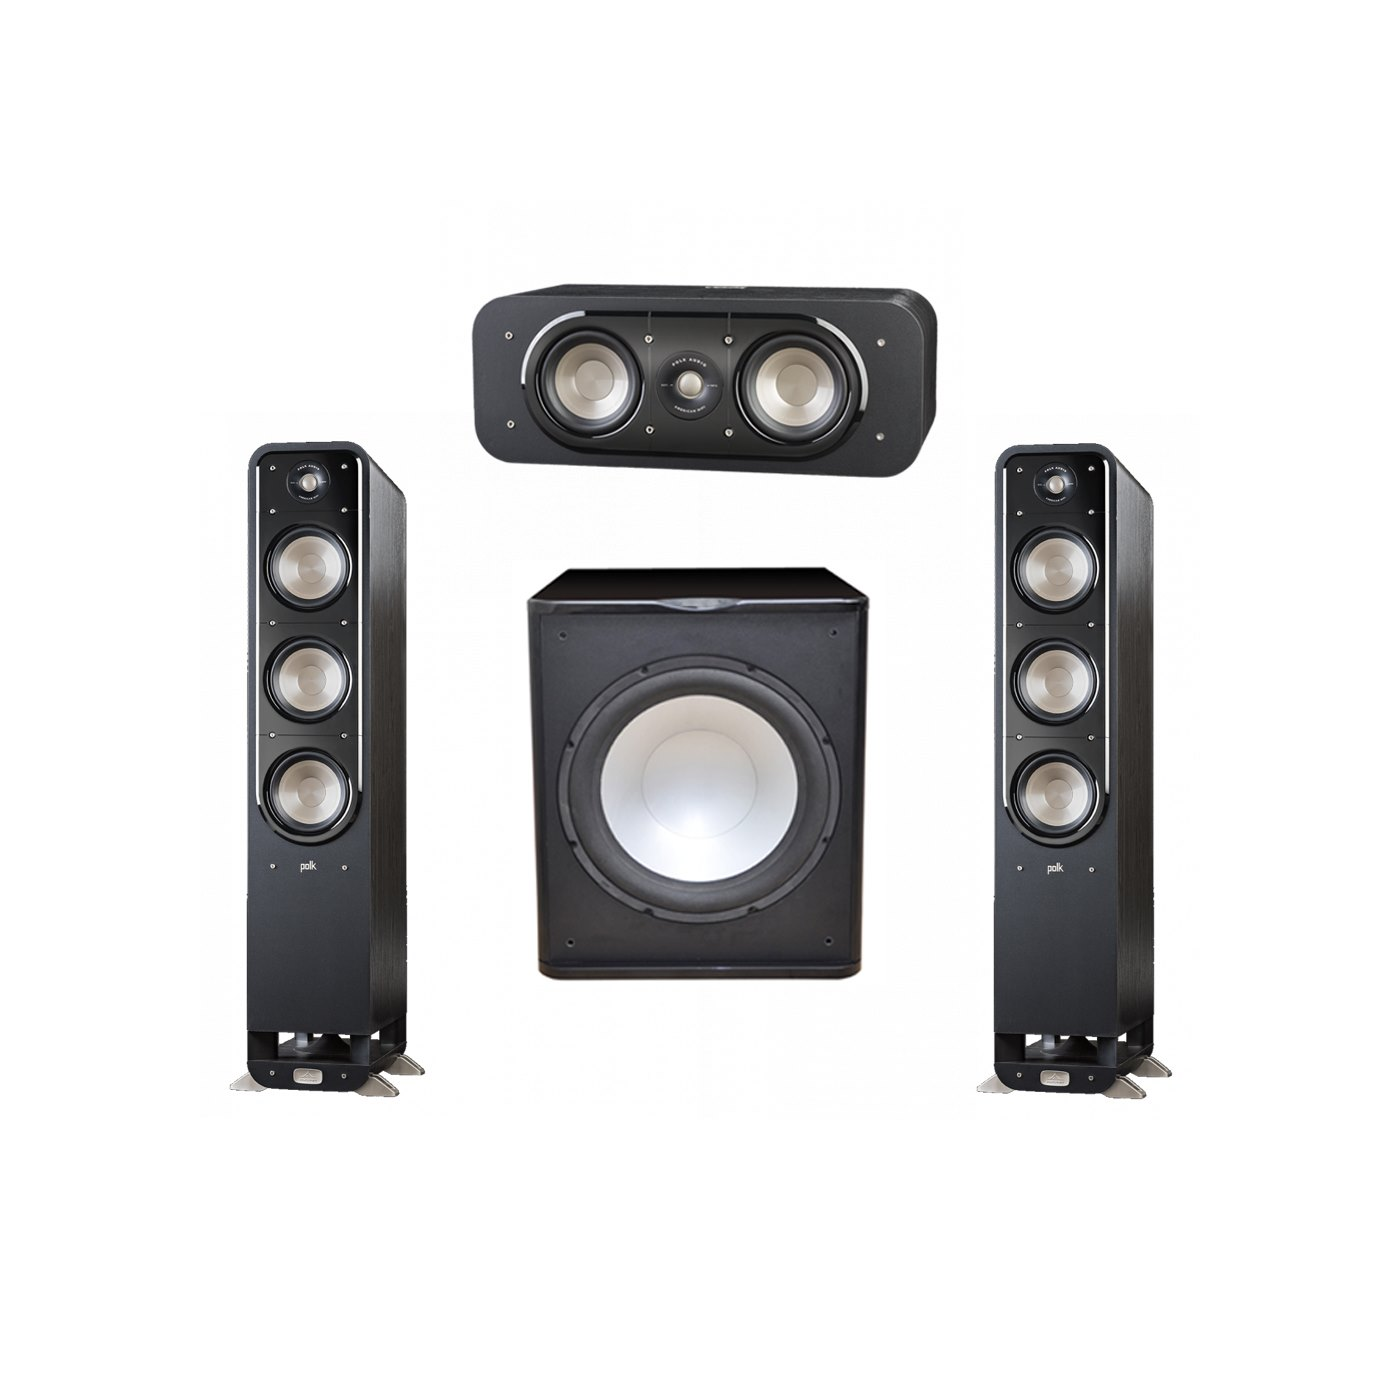 Polk Audio Signature 3.1 System with 2 S60 Tower Speaker, 1 Polk S30 Center Speaker, 1 Premier Acoustic PA-150 Powered Subwoofer